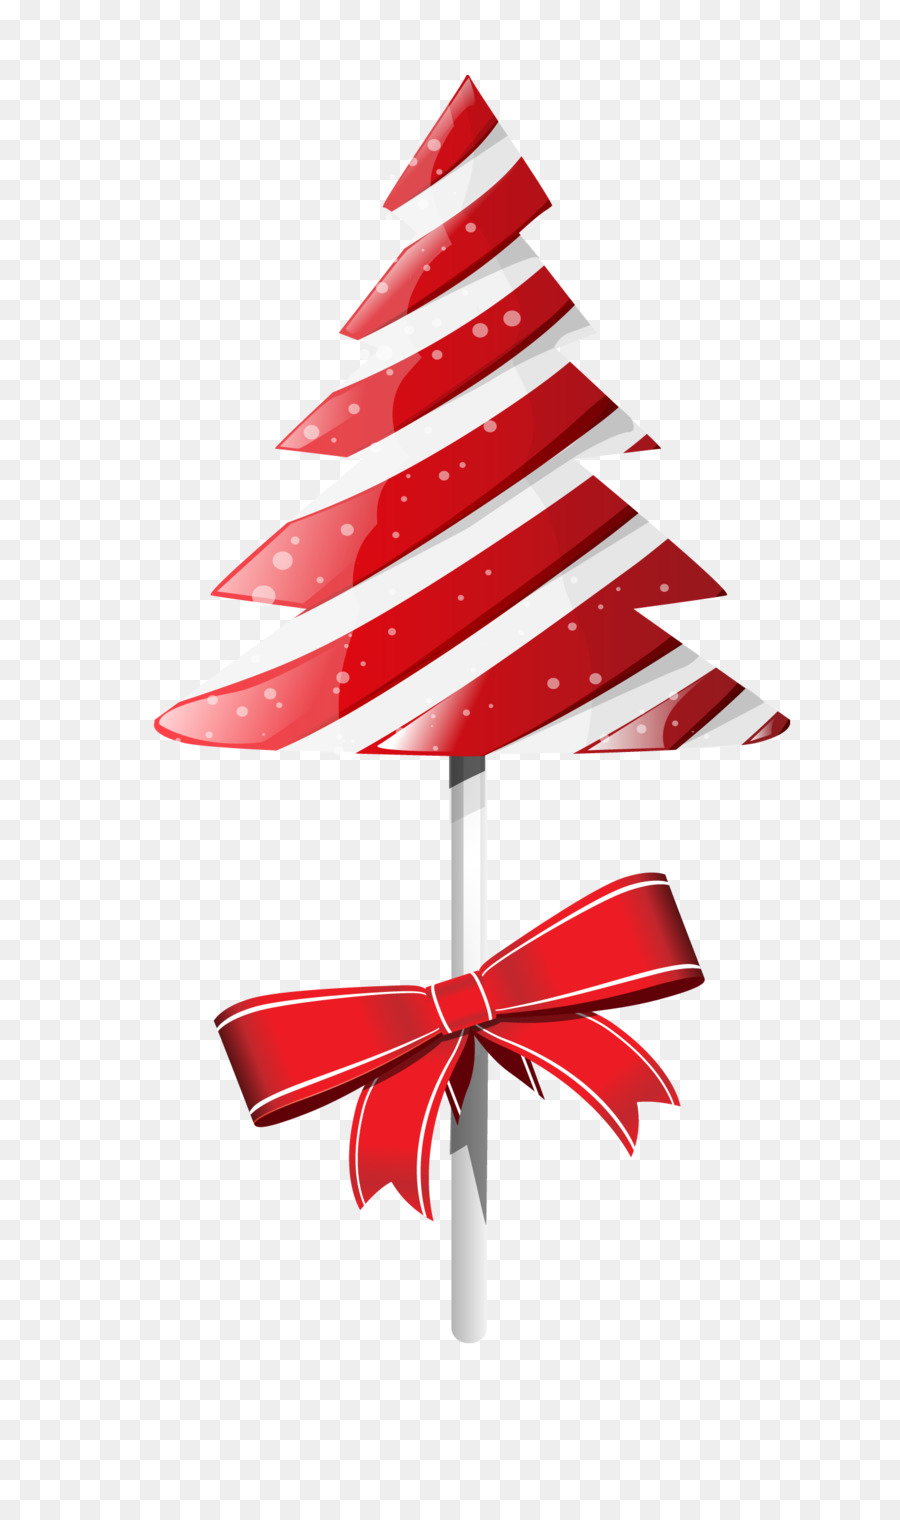 candy cane christmas tree christmas candy - Candy Cane Christmas Tree